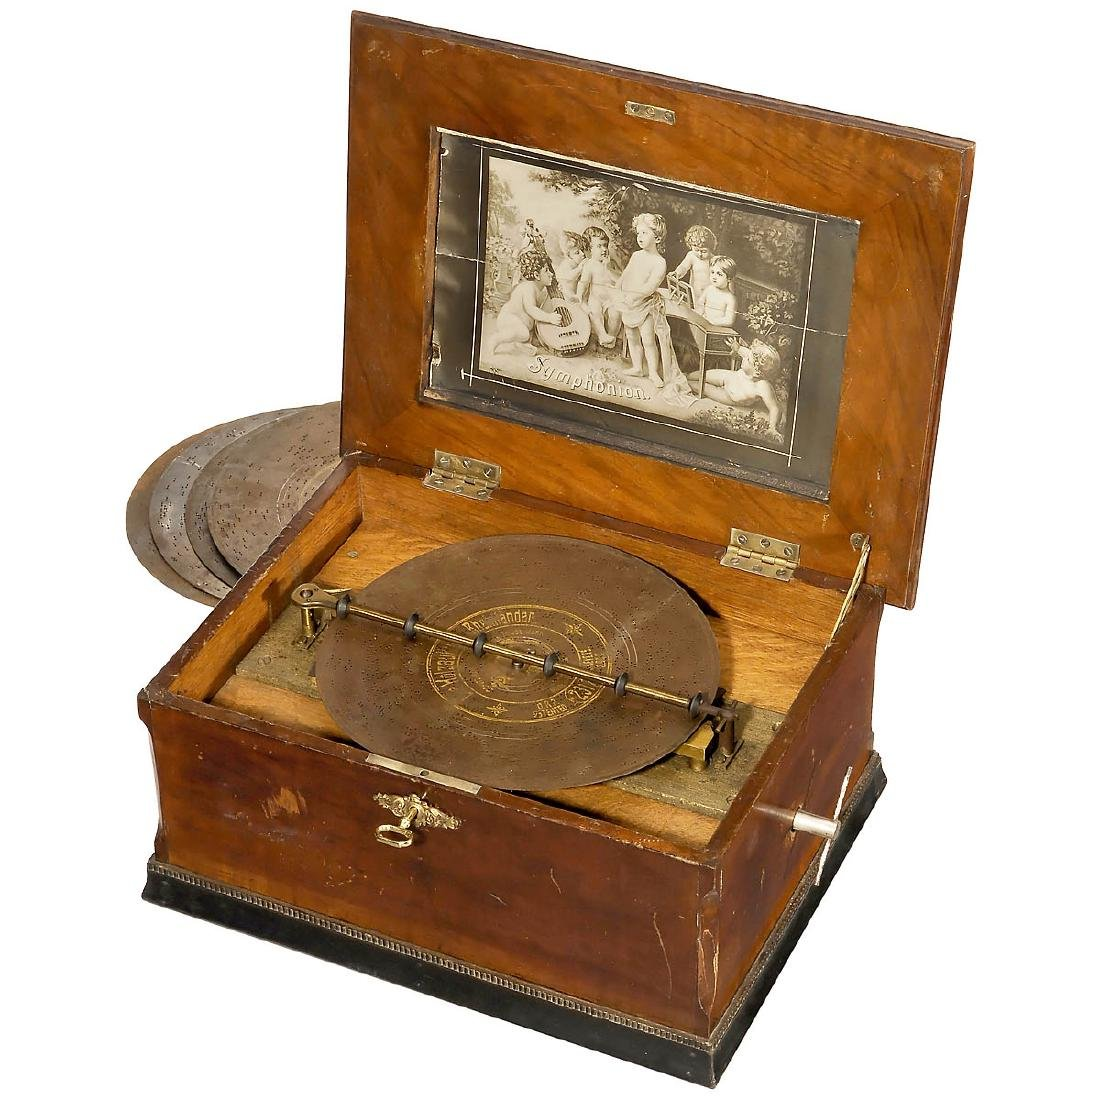 Symphonion No. 6N Disc Musical Box, c. 1900